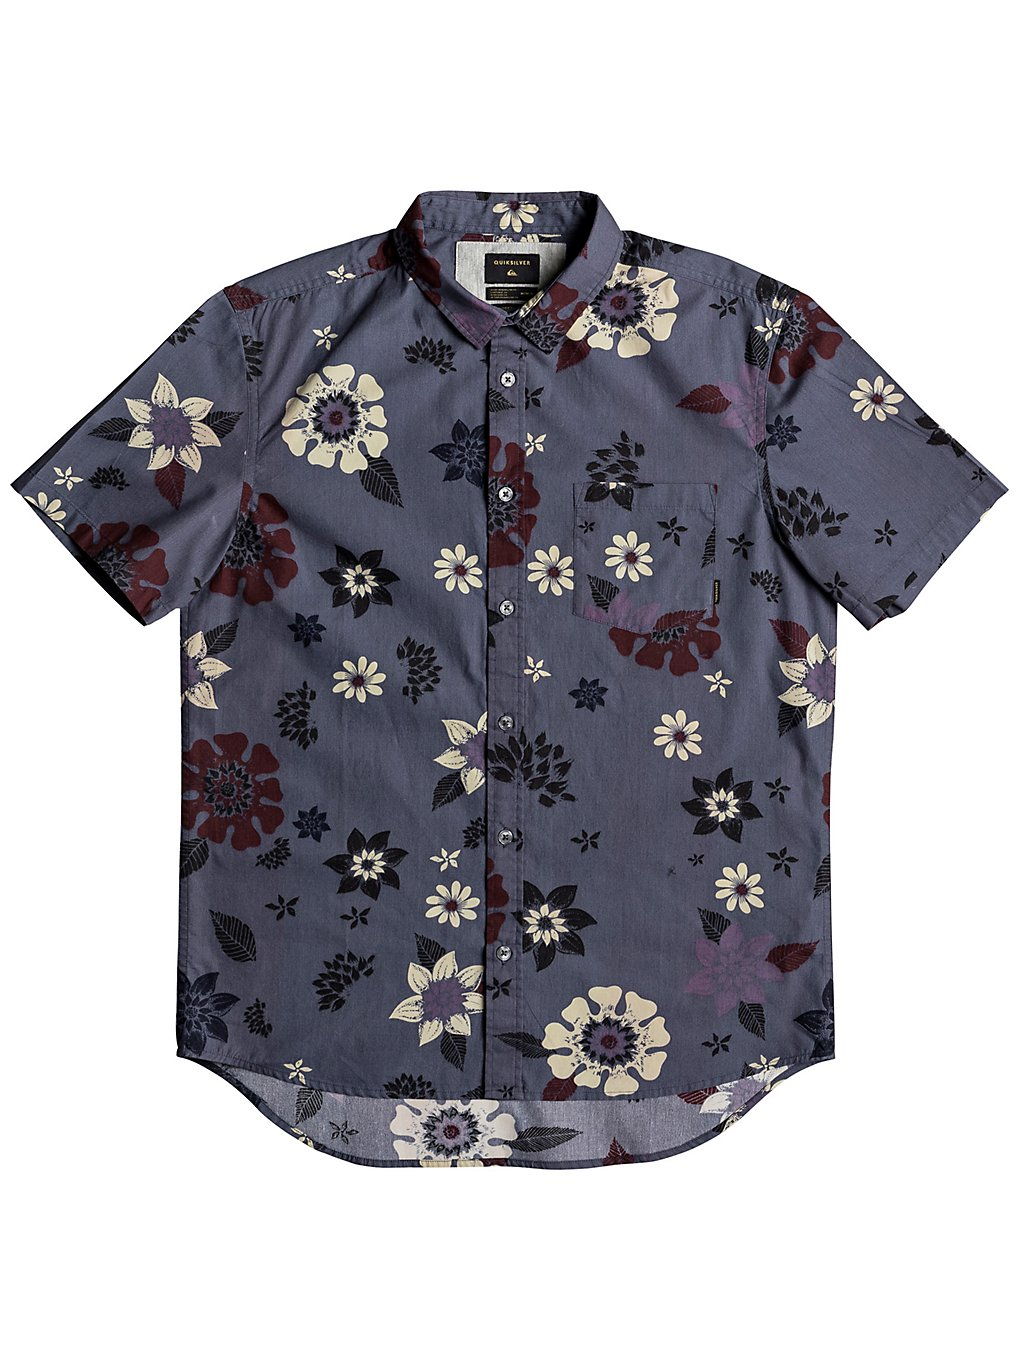 Quiksilver Sunset Floral Shirt